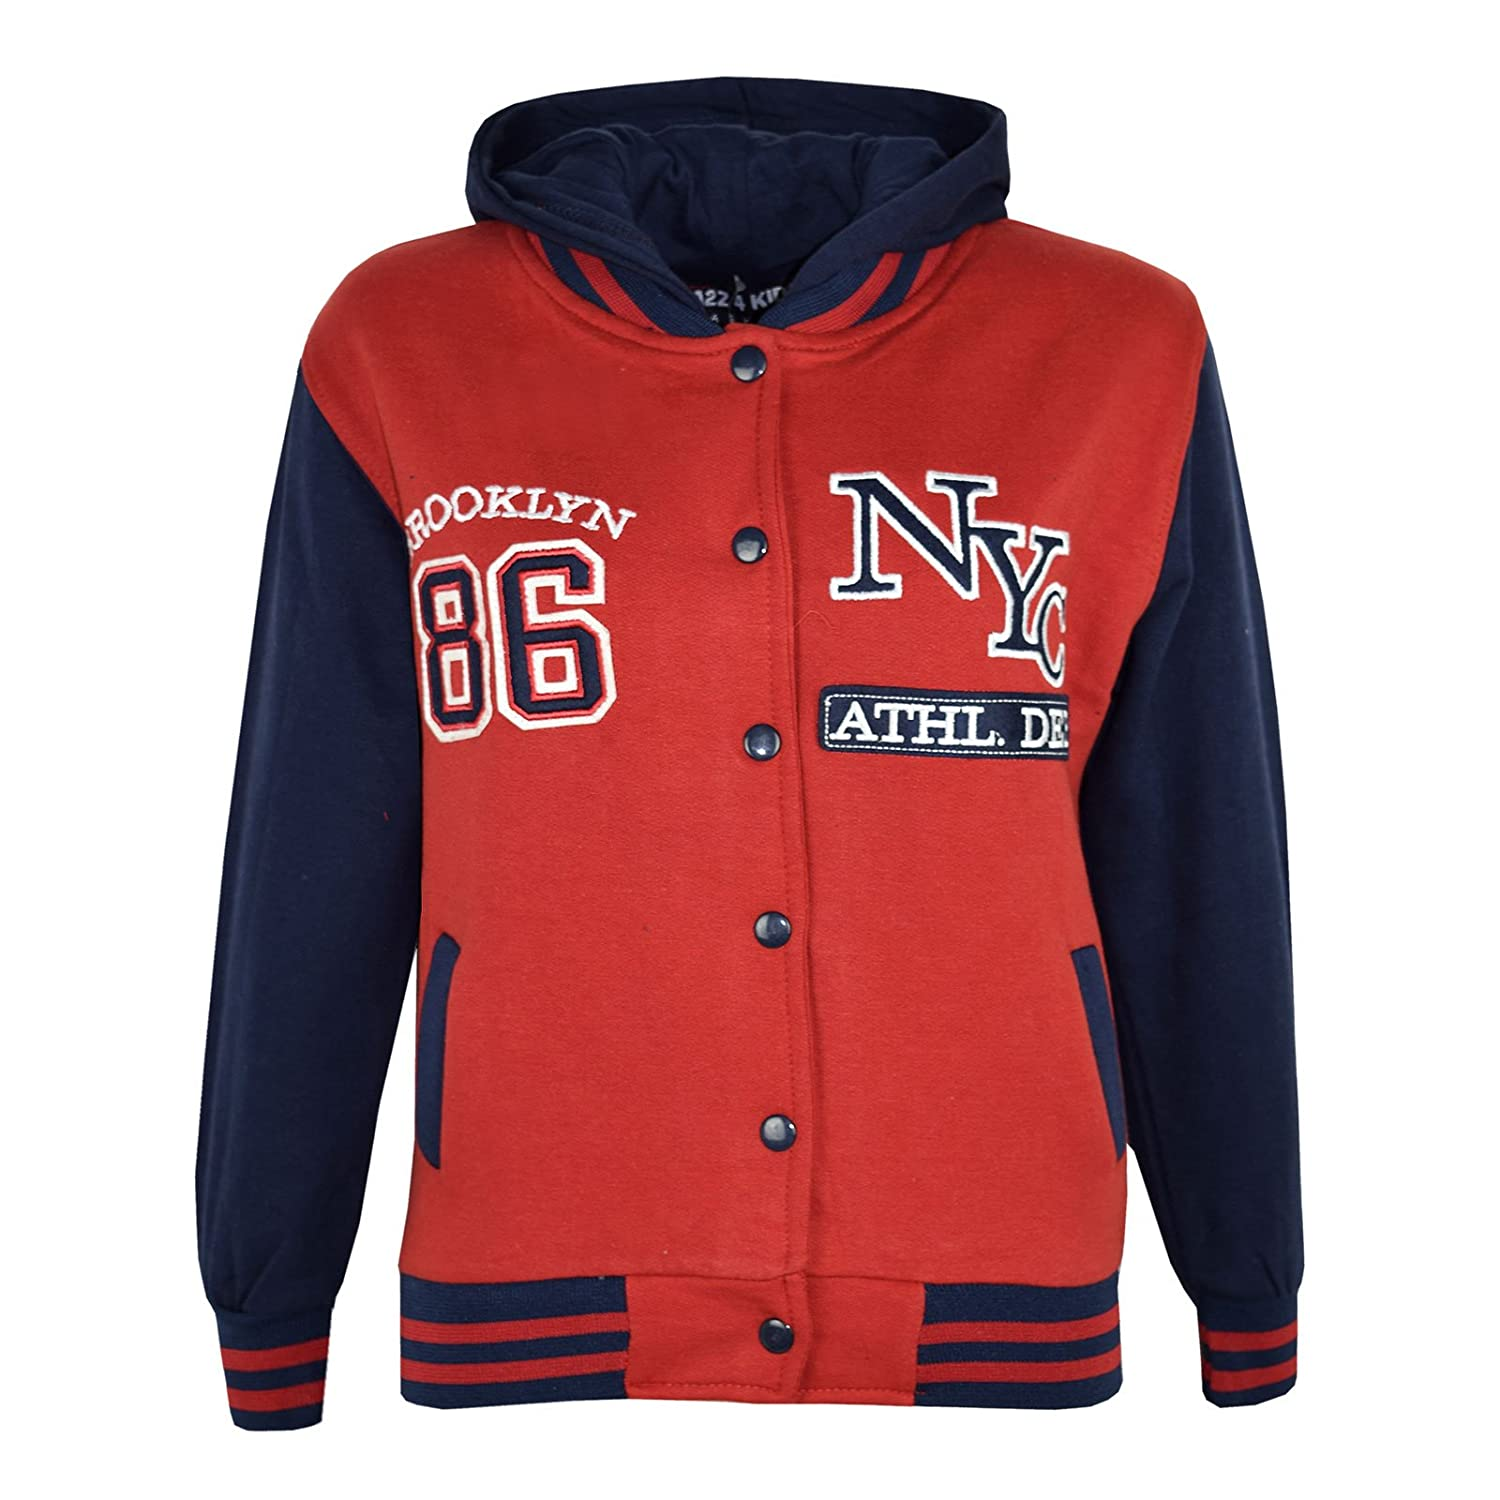 A2Z 4 Kids® Unisex Kids Girls Boys Baseball NY ATHLATIC Hooded Jacket Varsity Hoodie New Age 7 8 9 10 11 12 13 Years